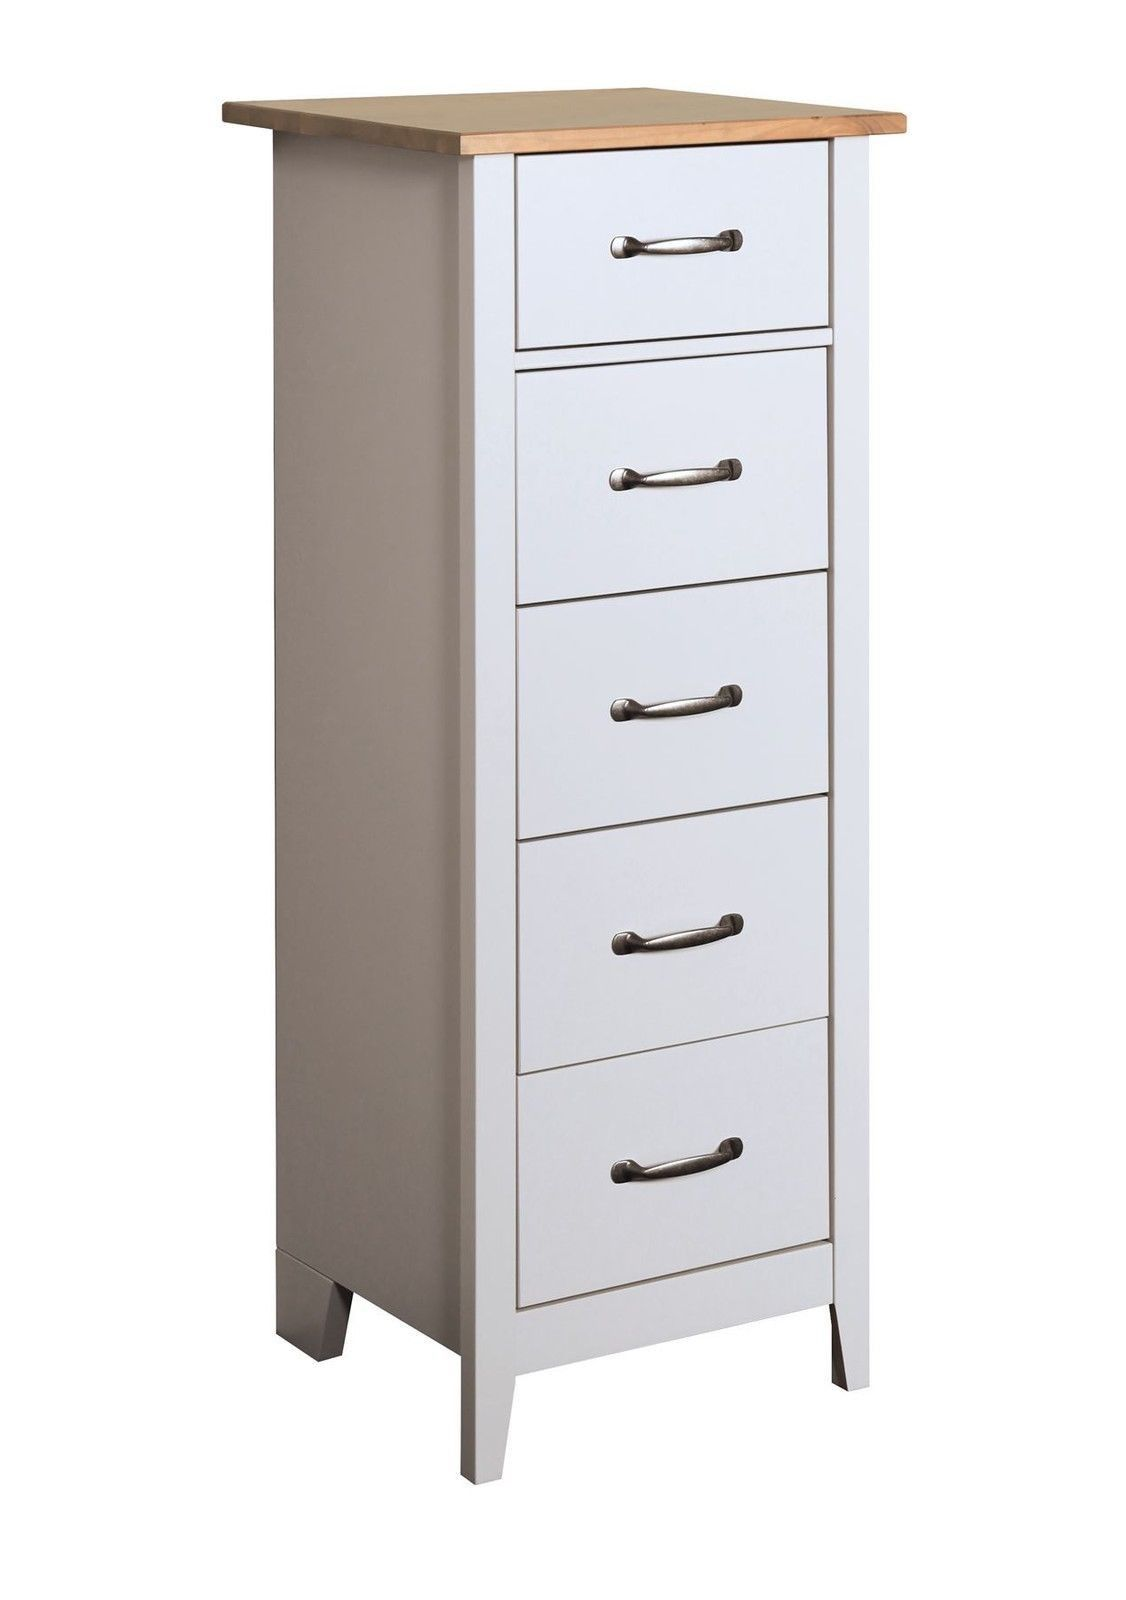 grey skinny wooden narrow wood model of when thin tall drawers drawer practical chest best furniture dresser bedroom